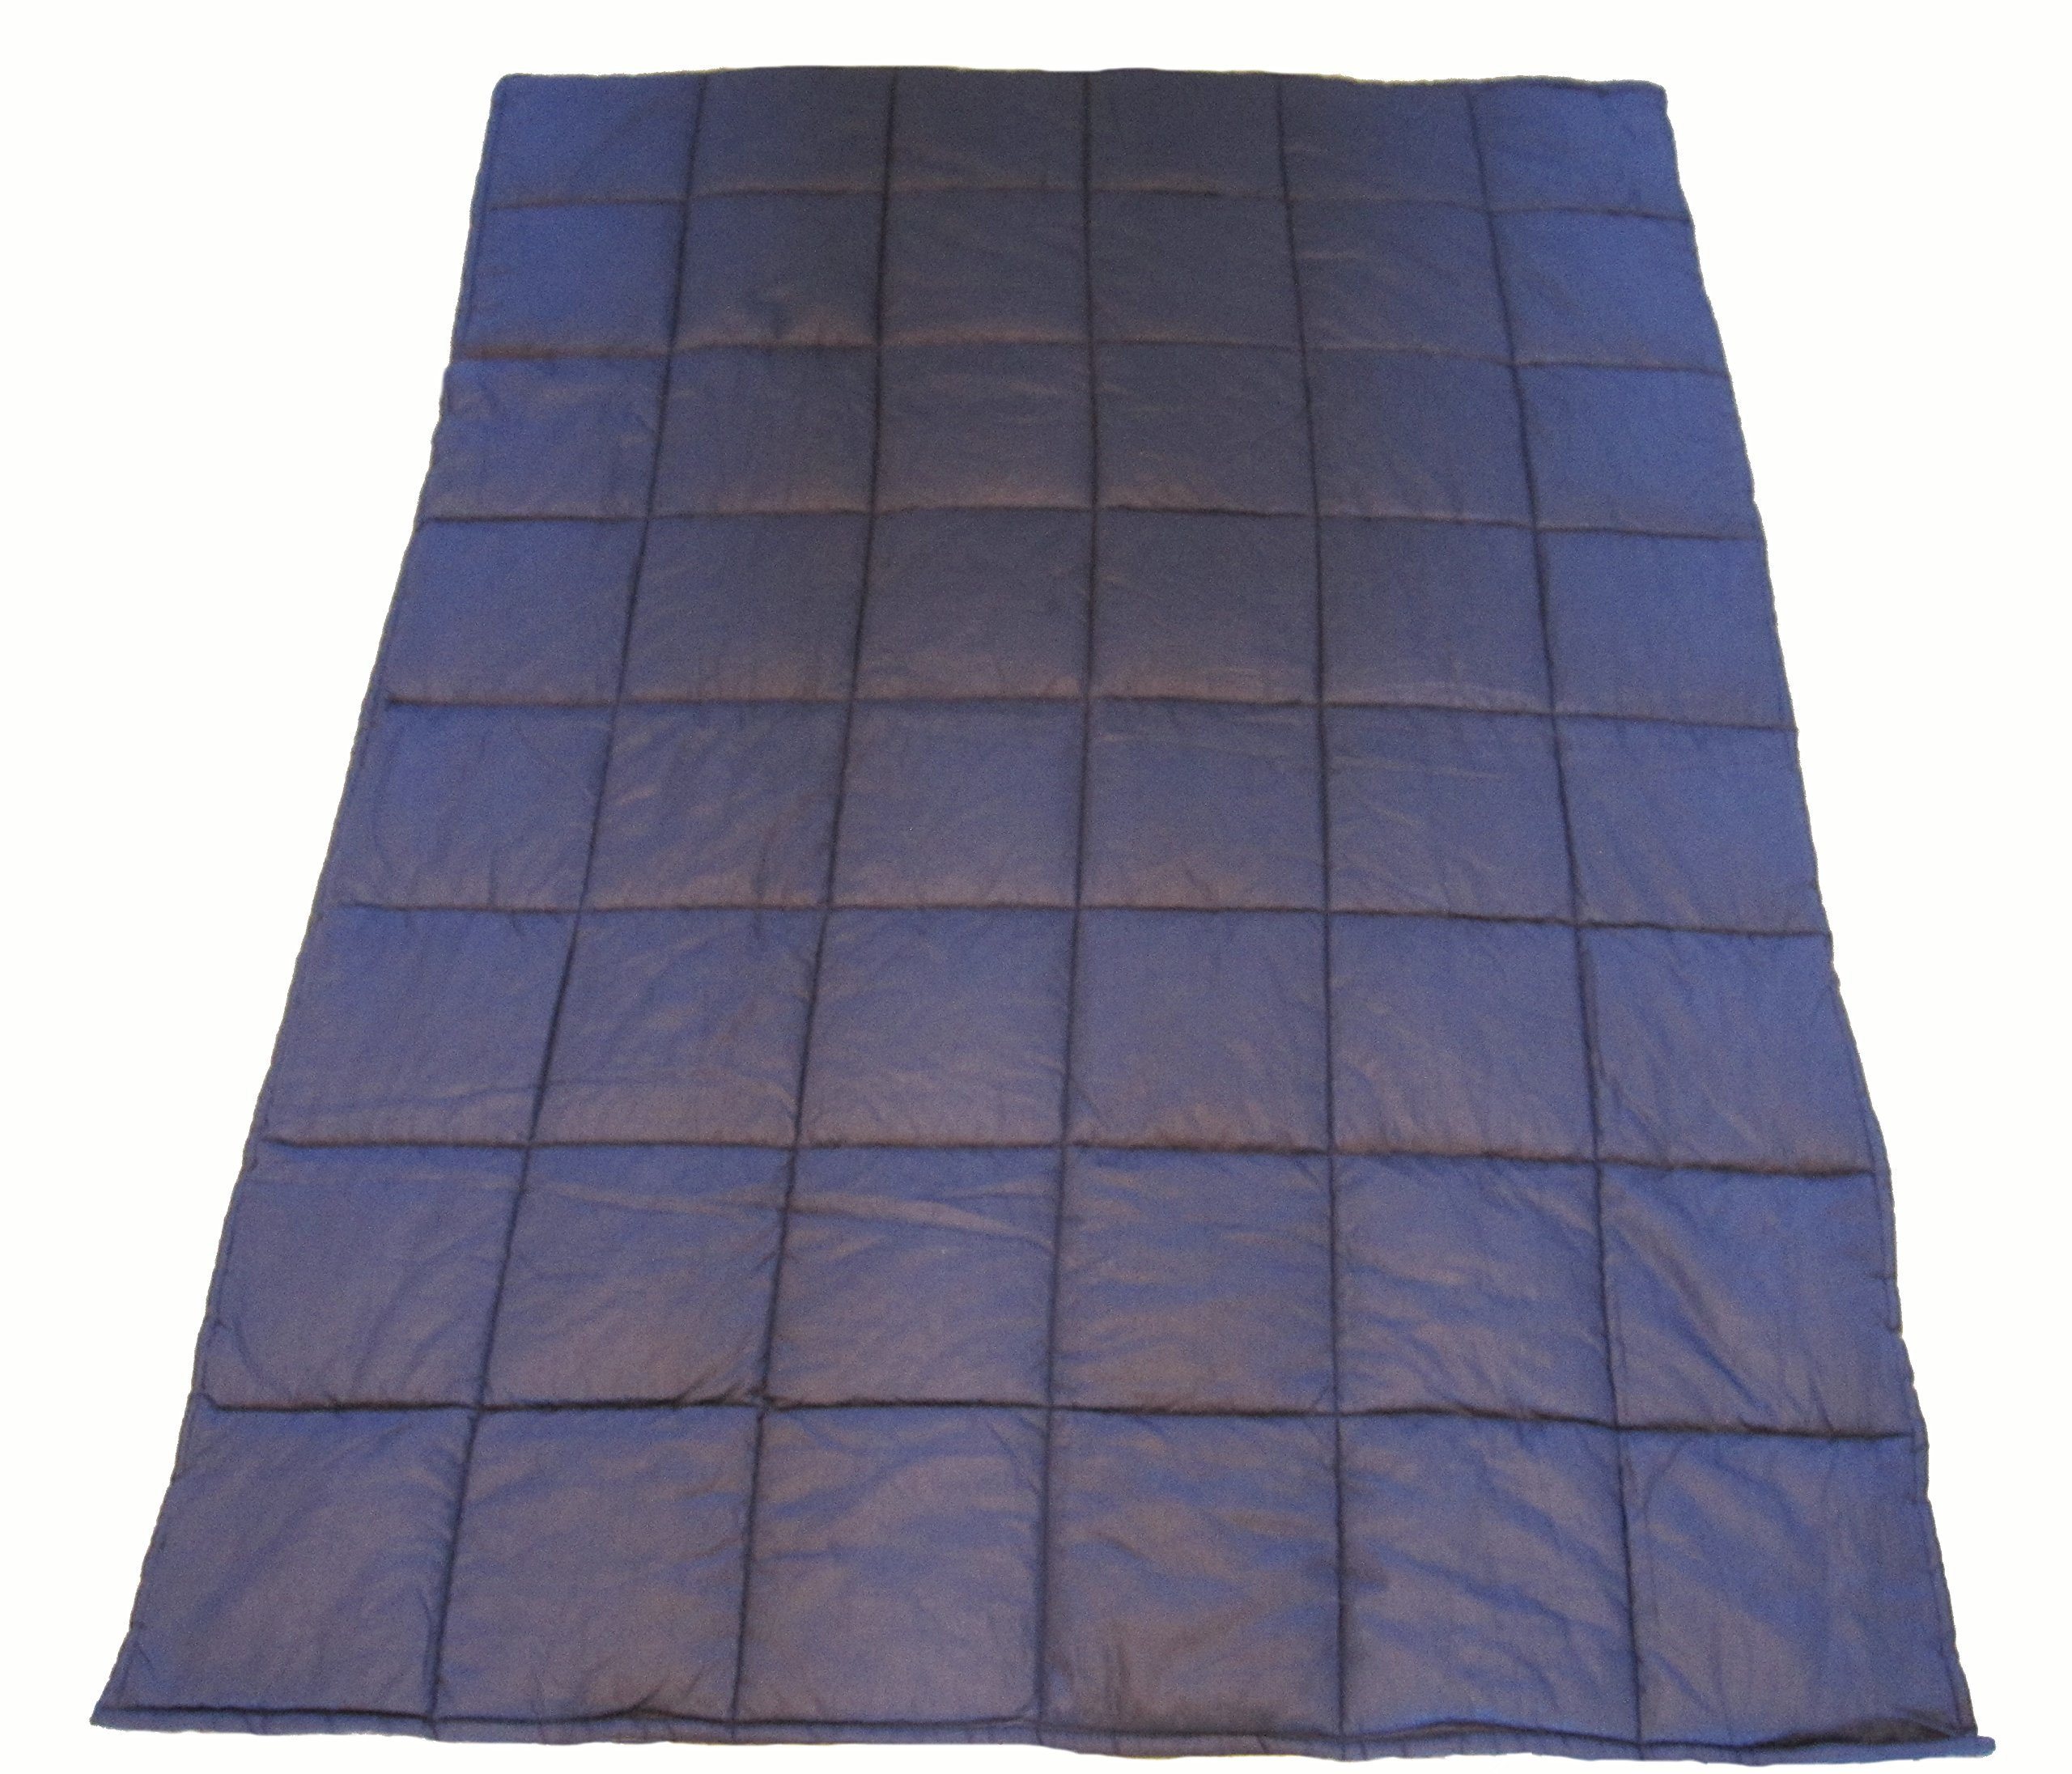 Weighted Blanket for Adults, 10lb, Cotton, Stress and Anxiety Relief, Helps Calm AAD, ADHD, Autism By Jade Silk by Jade Silk (Image #6)